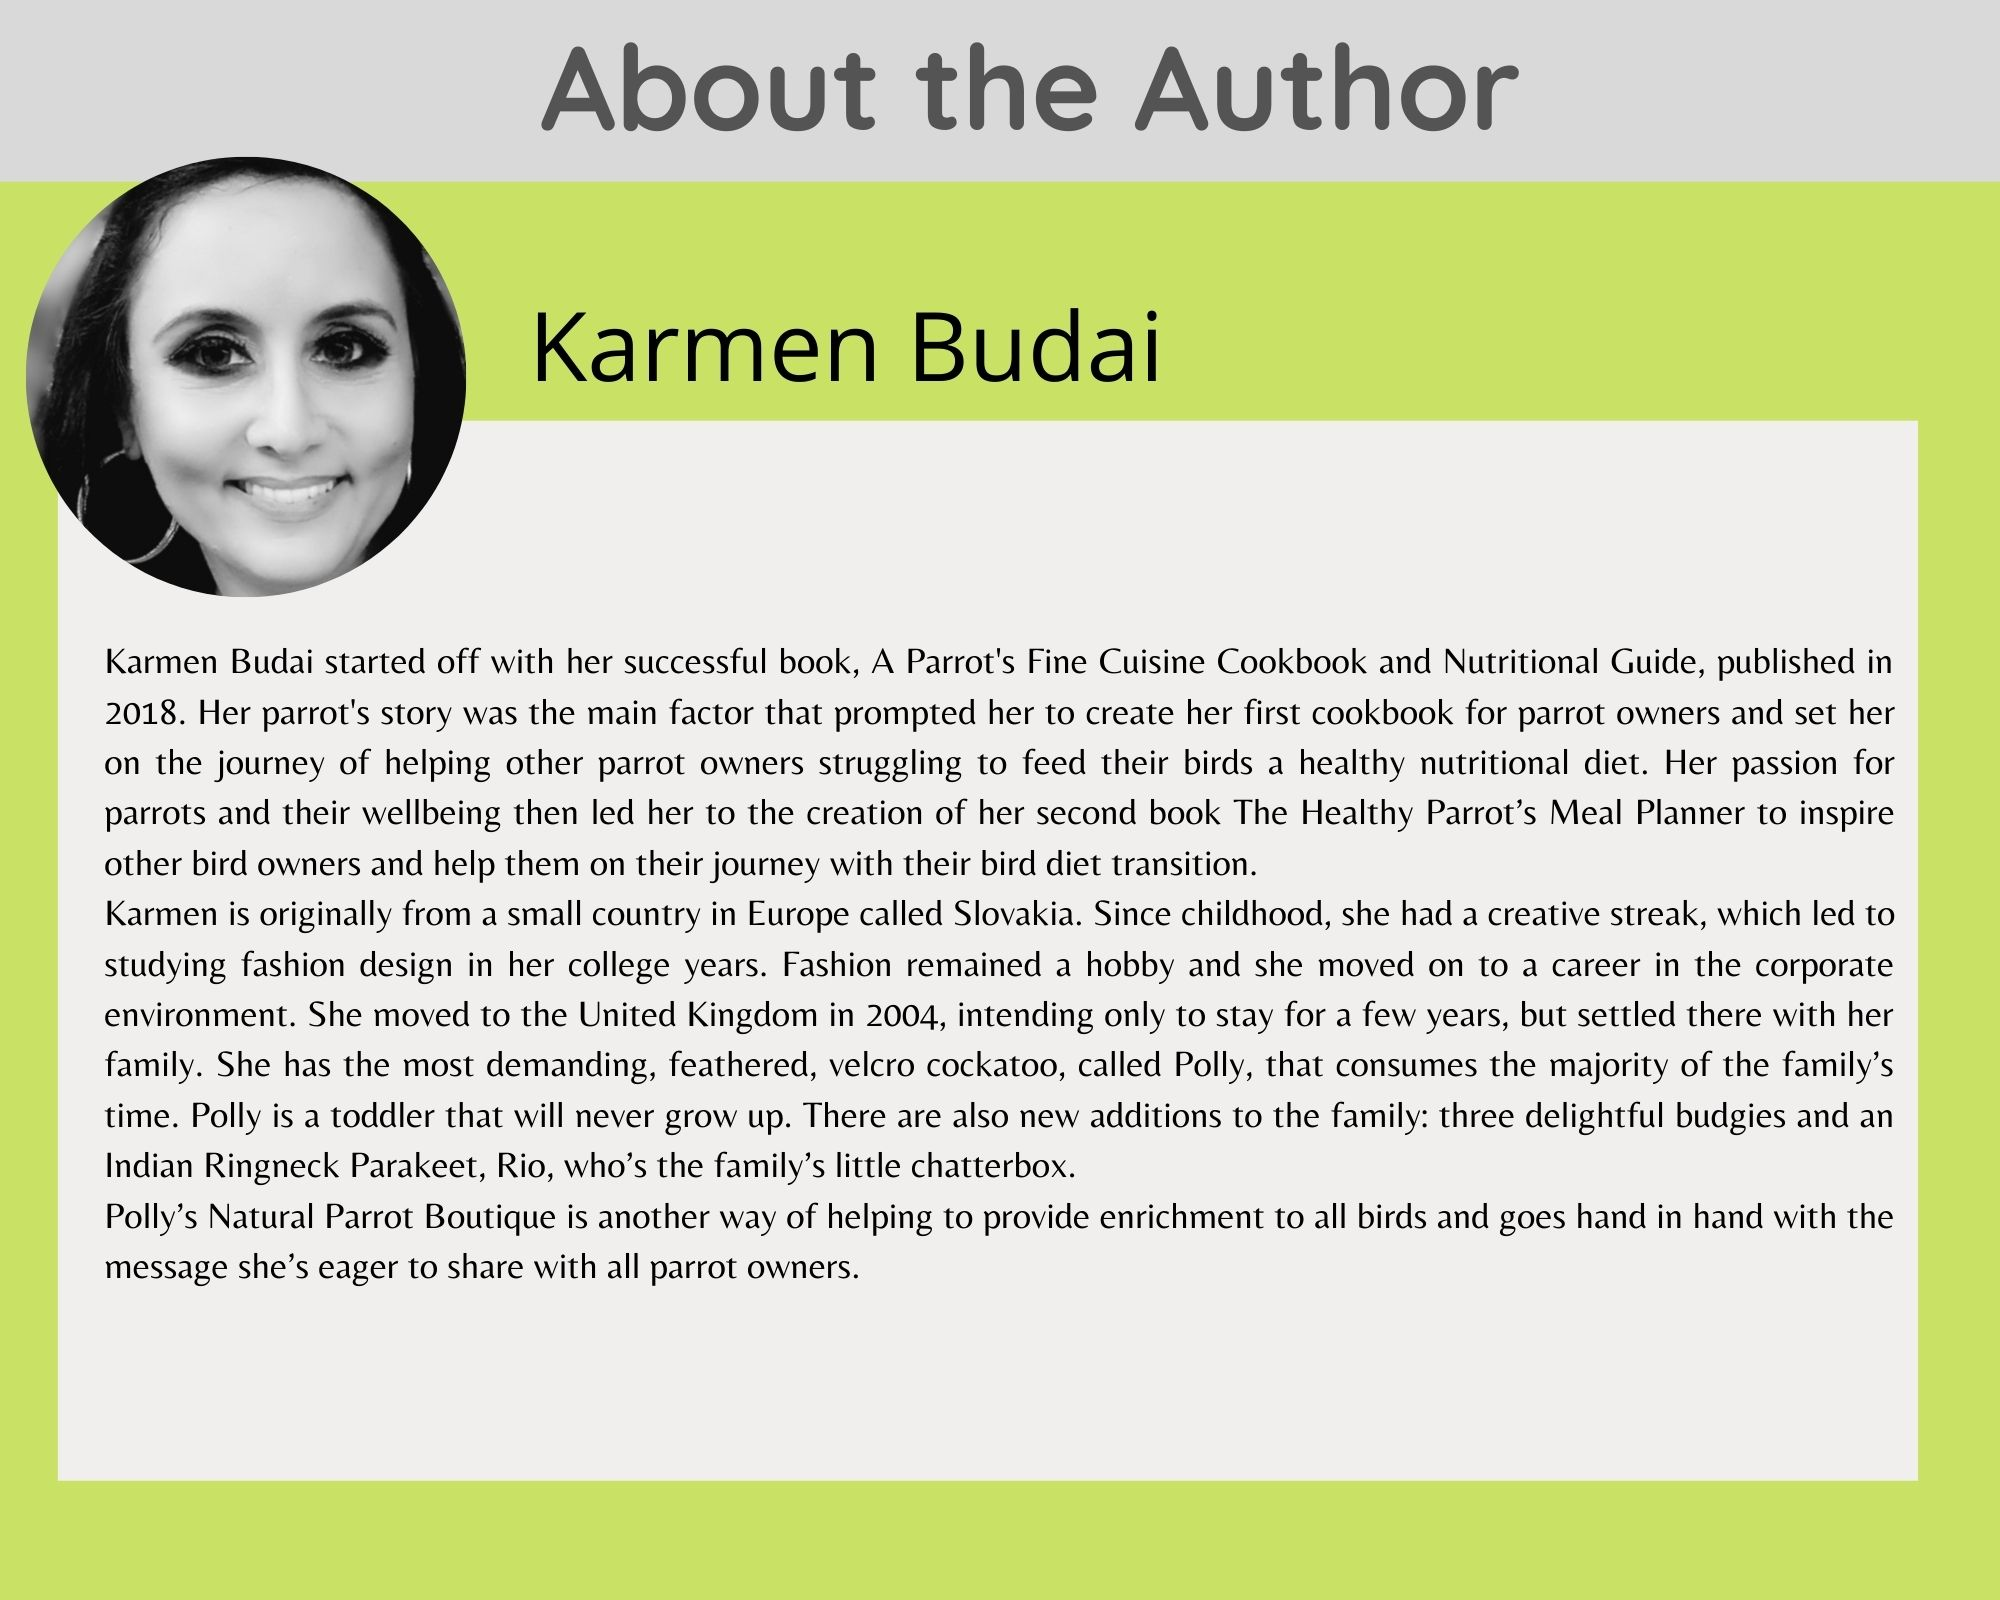 about-the-author-karmen-budai-bio.jpg